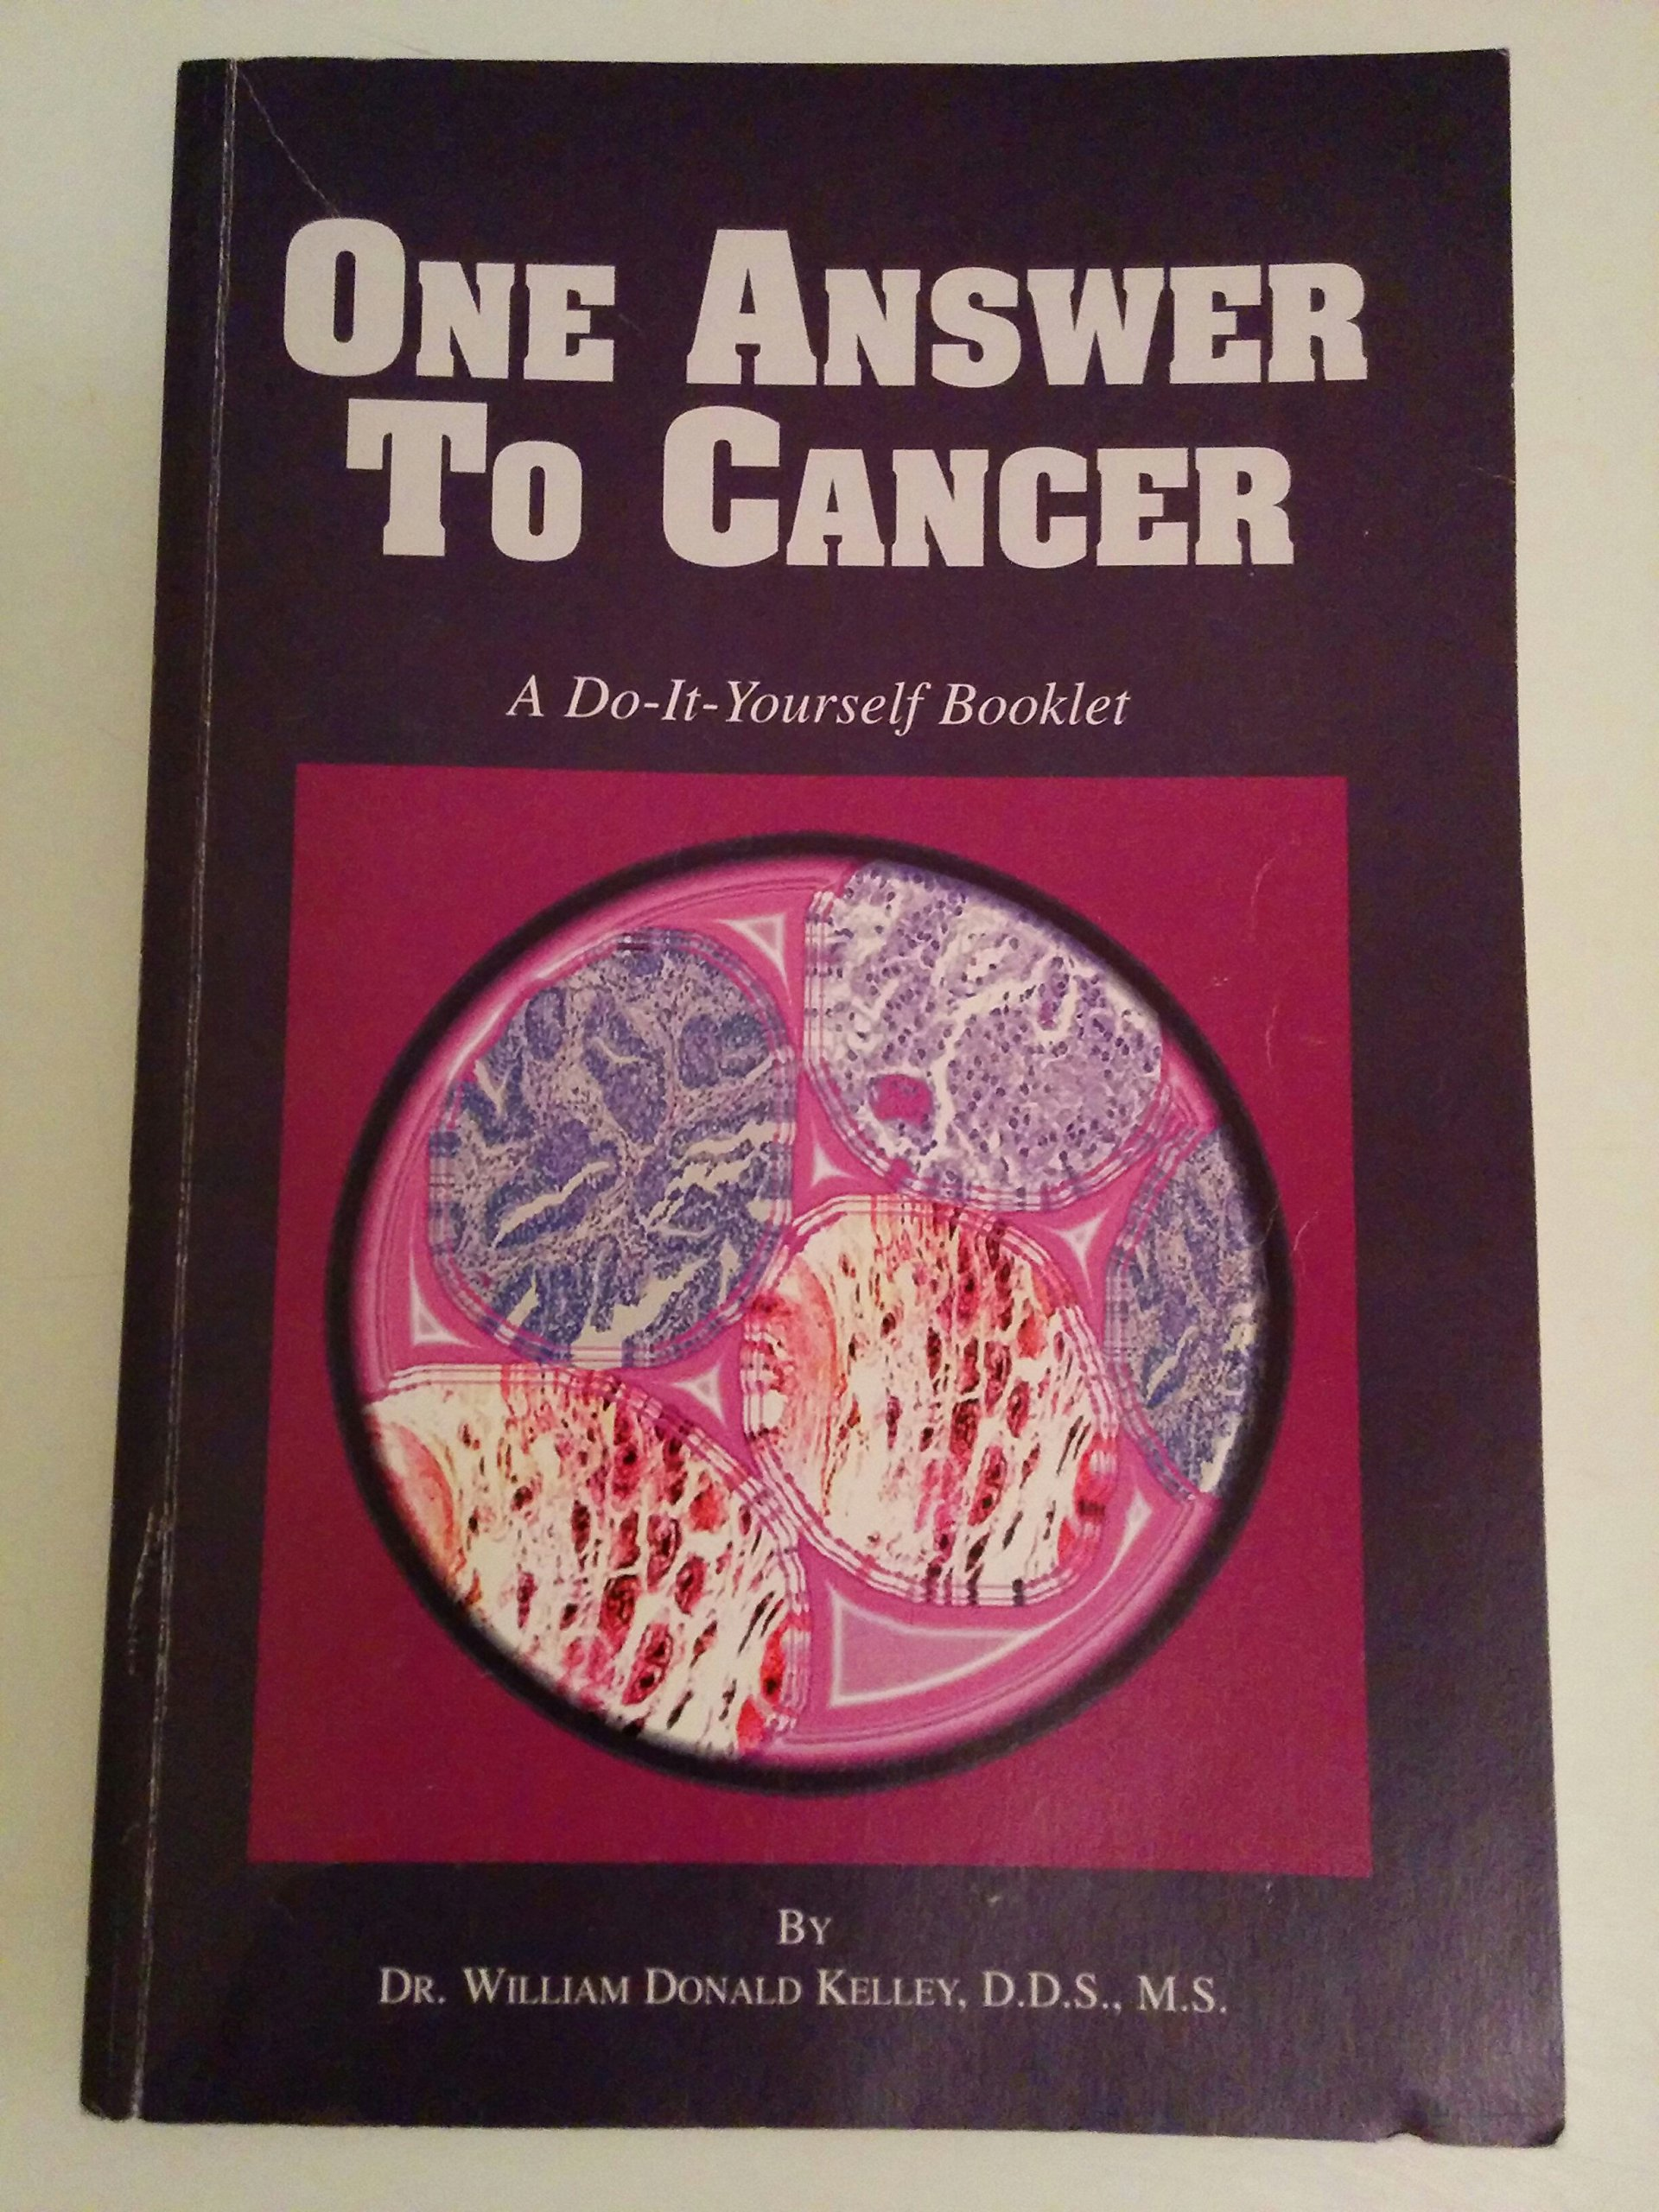 One answer to cancer a do it yourself booklet dr william donald one answer to cancer a do it yourself booklet dr william donald kelley 9780968217405 amazon books solutioingenieria Images